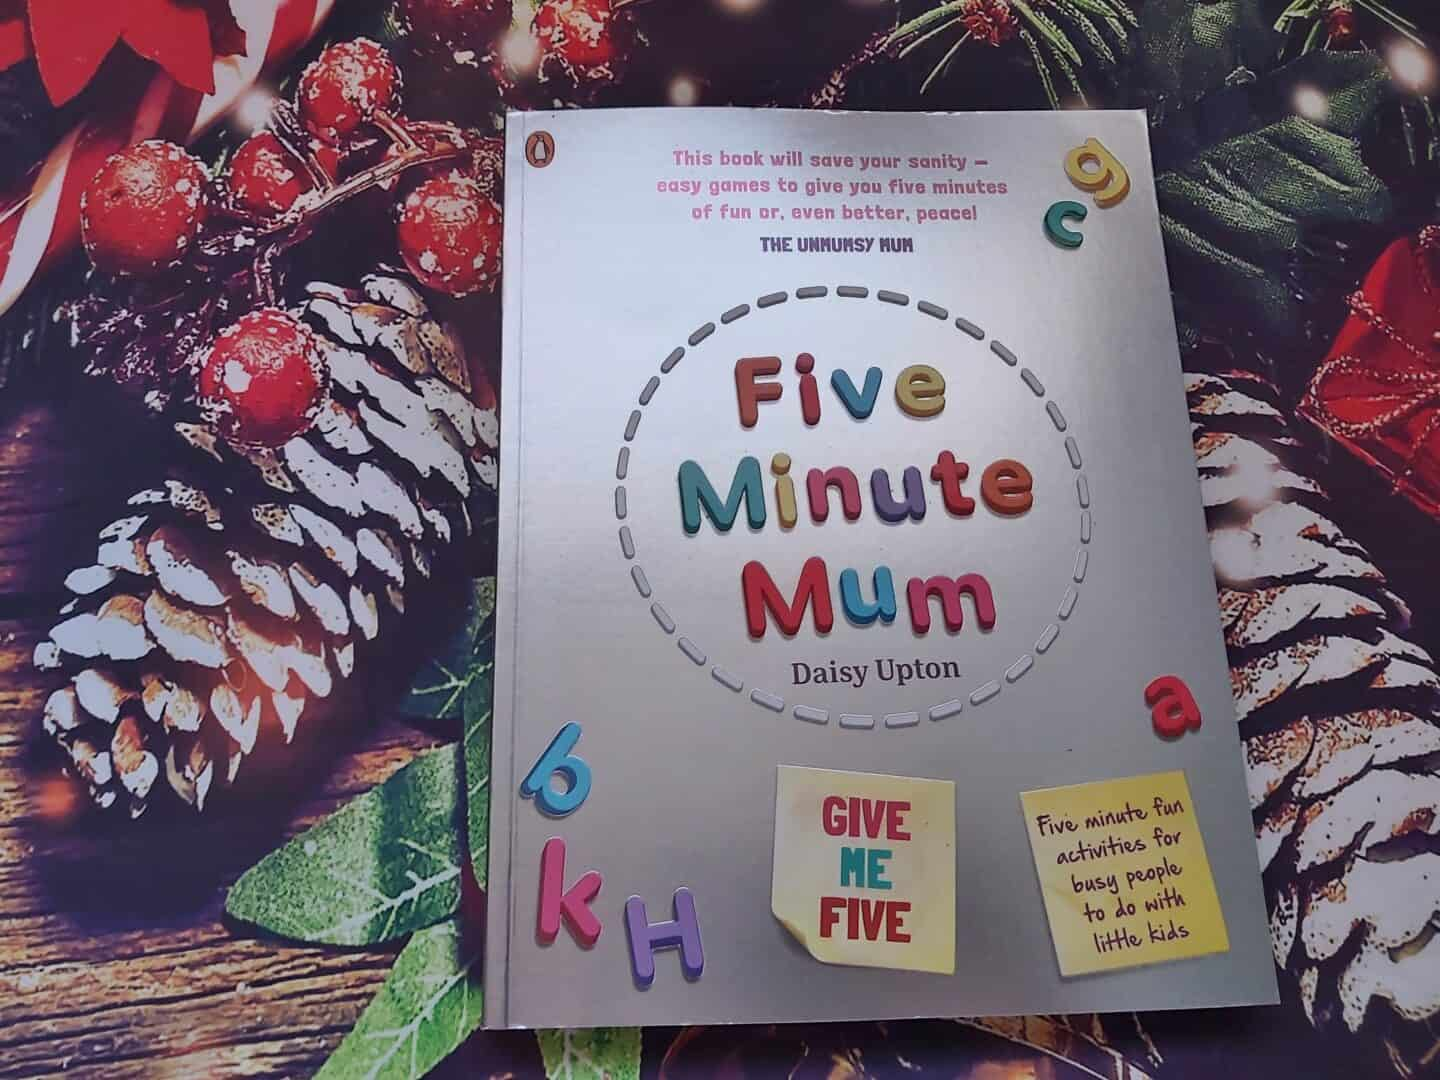 Five Minute Mum book by Daisy Upton: Something to read according to the four gift rule